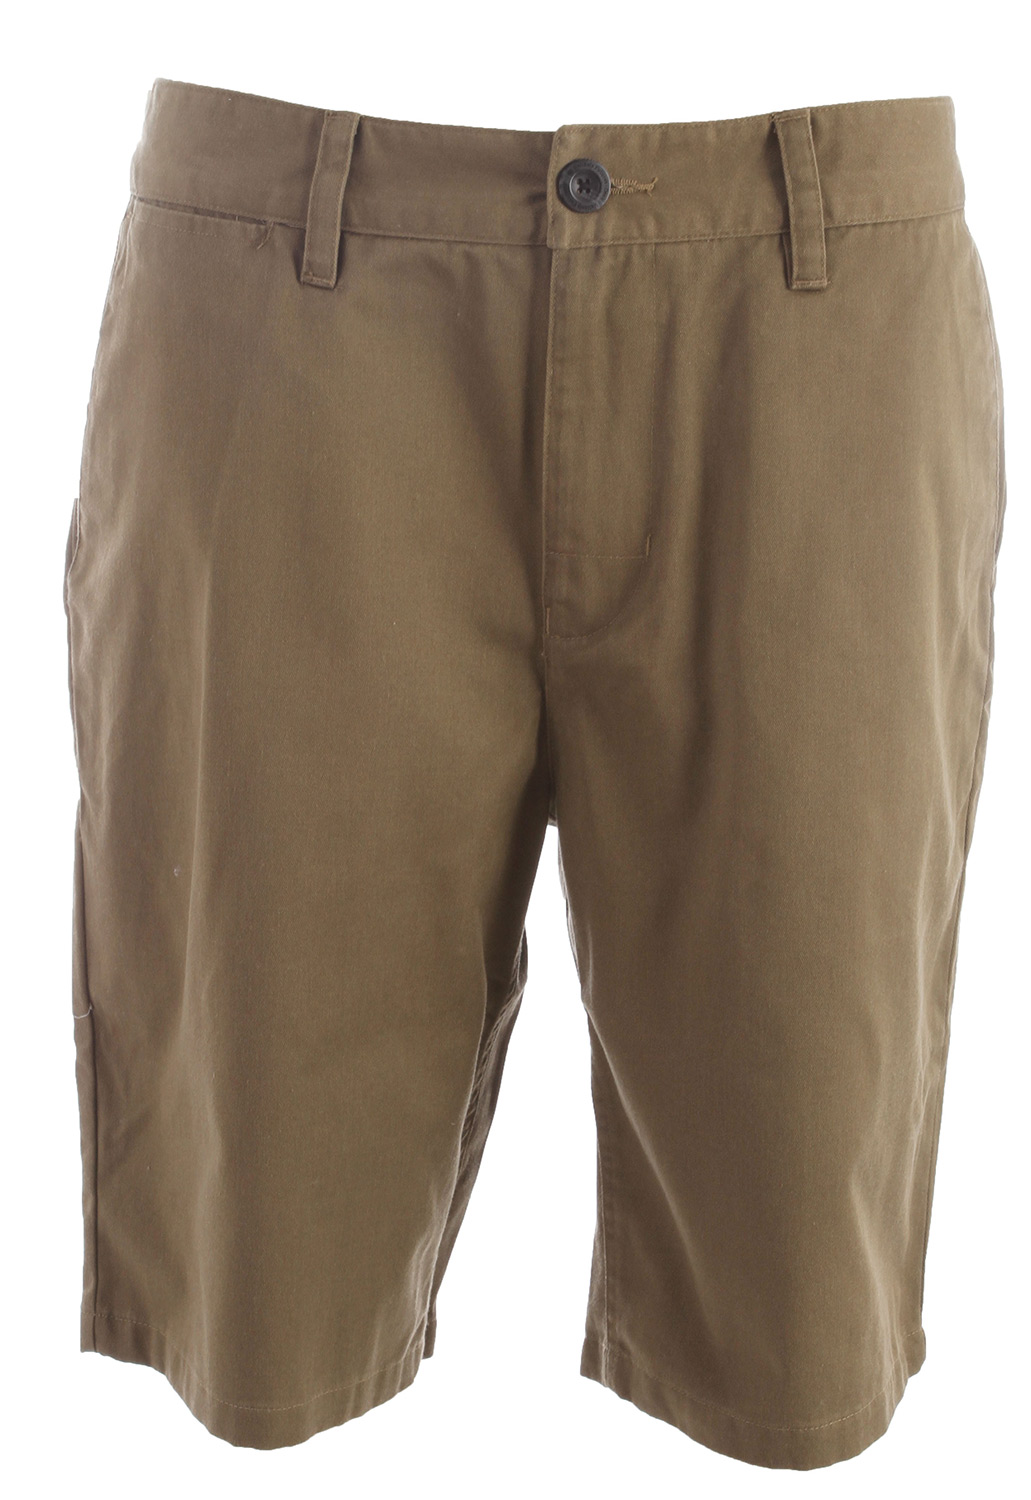 Key Features of the Analog Ag Chino 21In Shorts: Chino short Interior waistband detail and work wear labeling 55% Cotton / 45% Polyester with Wheel wash - $48.00